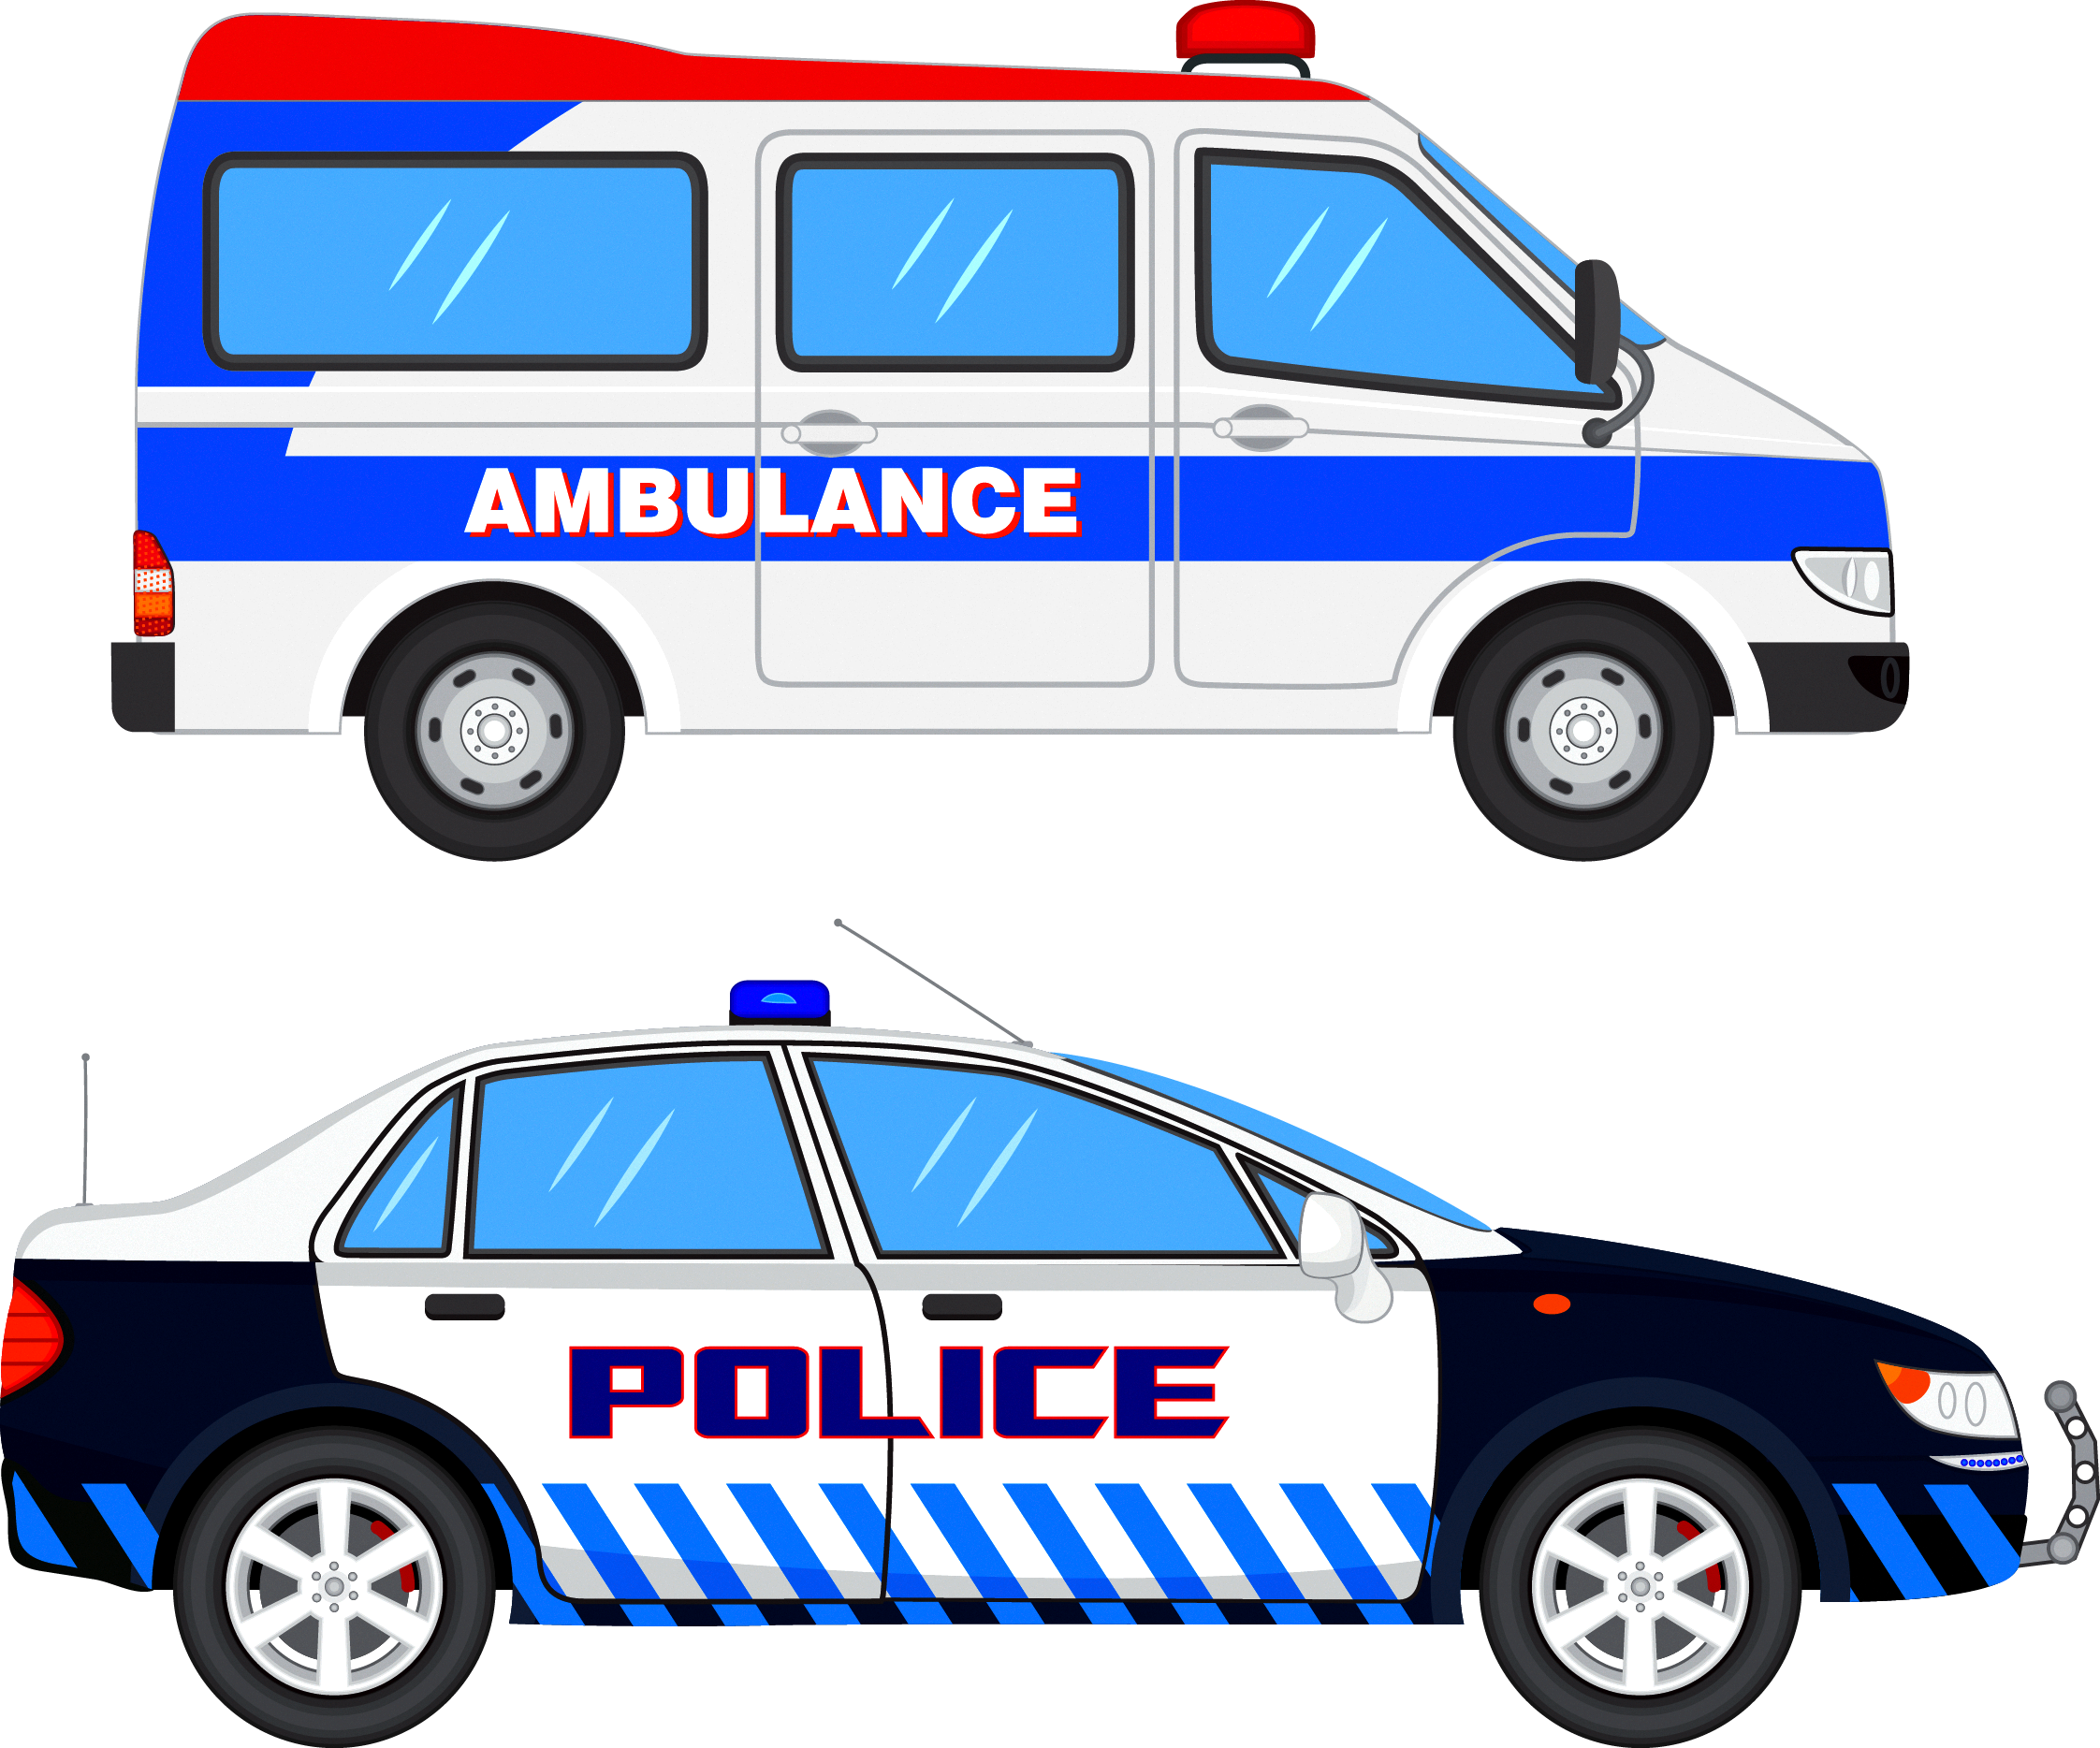 Ambulance car clipart vector freeuse stock Police car Clip art - Ambulance police car 2244*1868 transprent Png ... vector freeuse stock